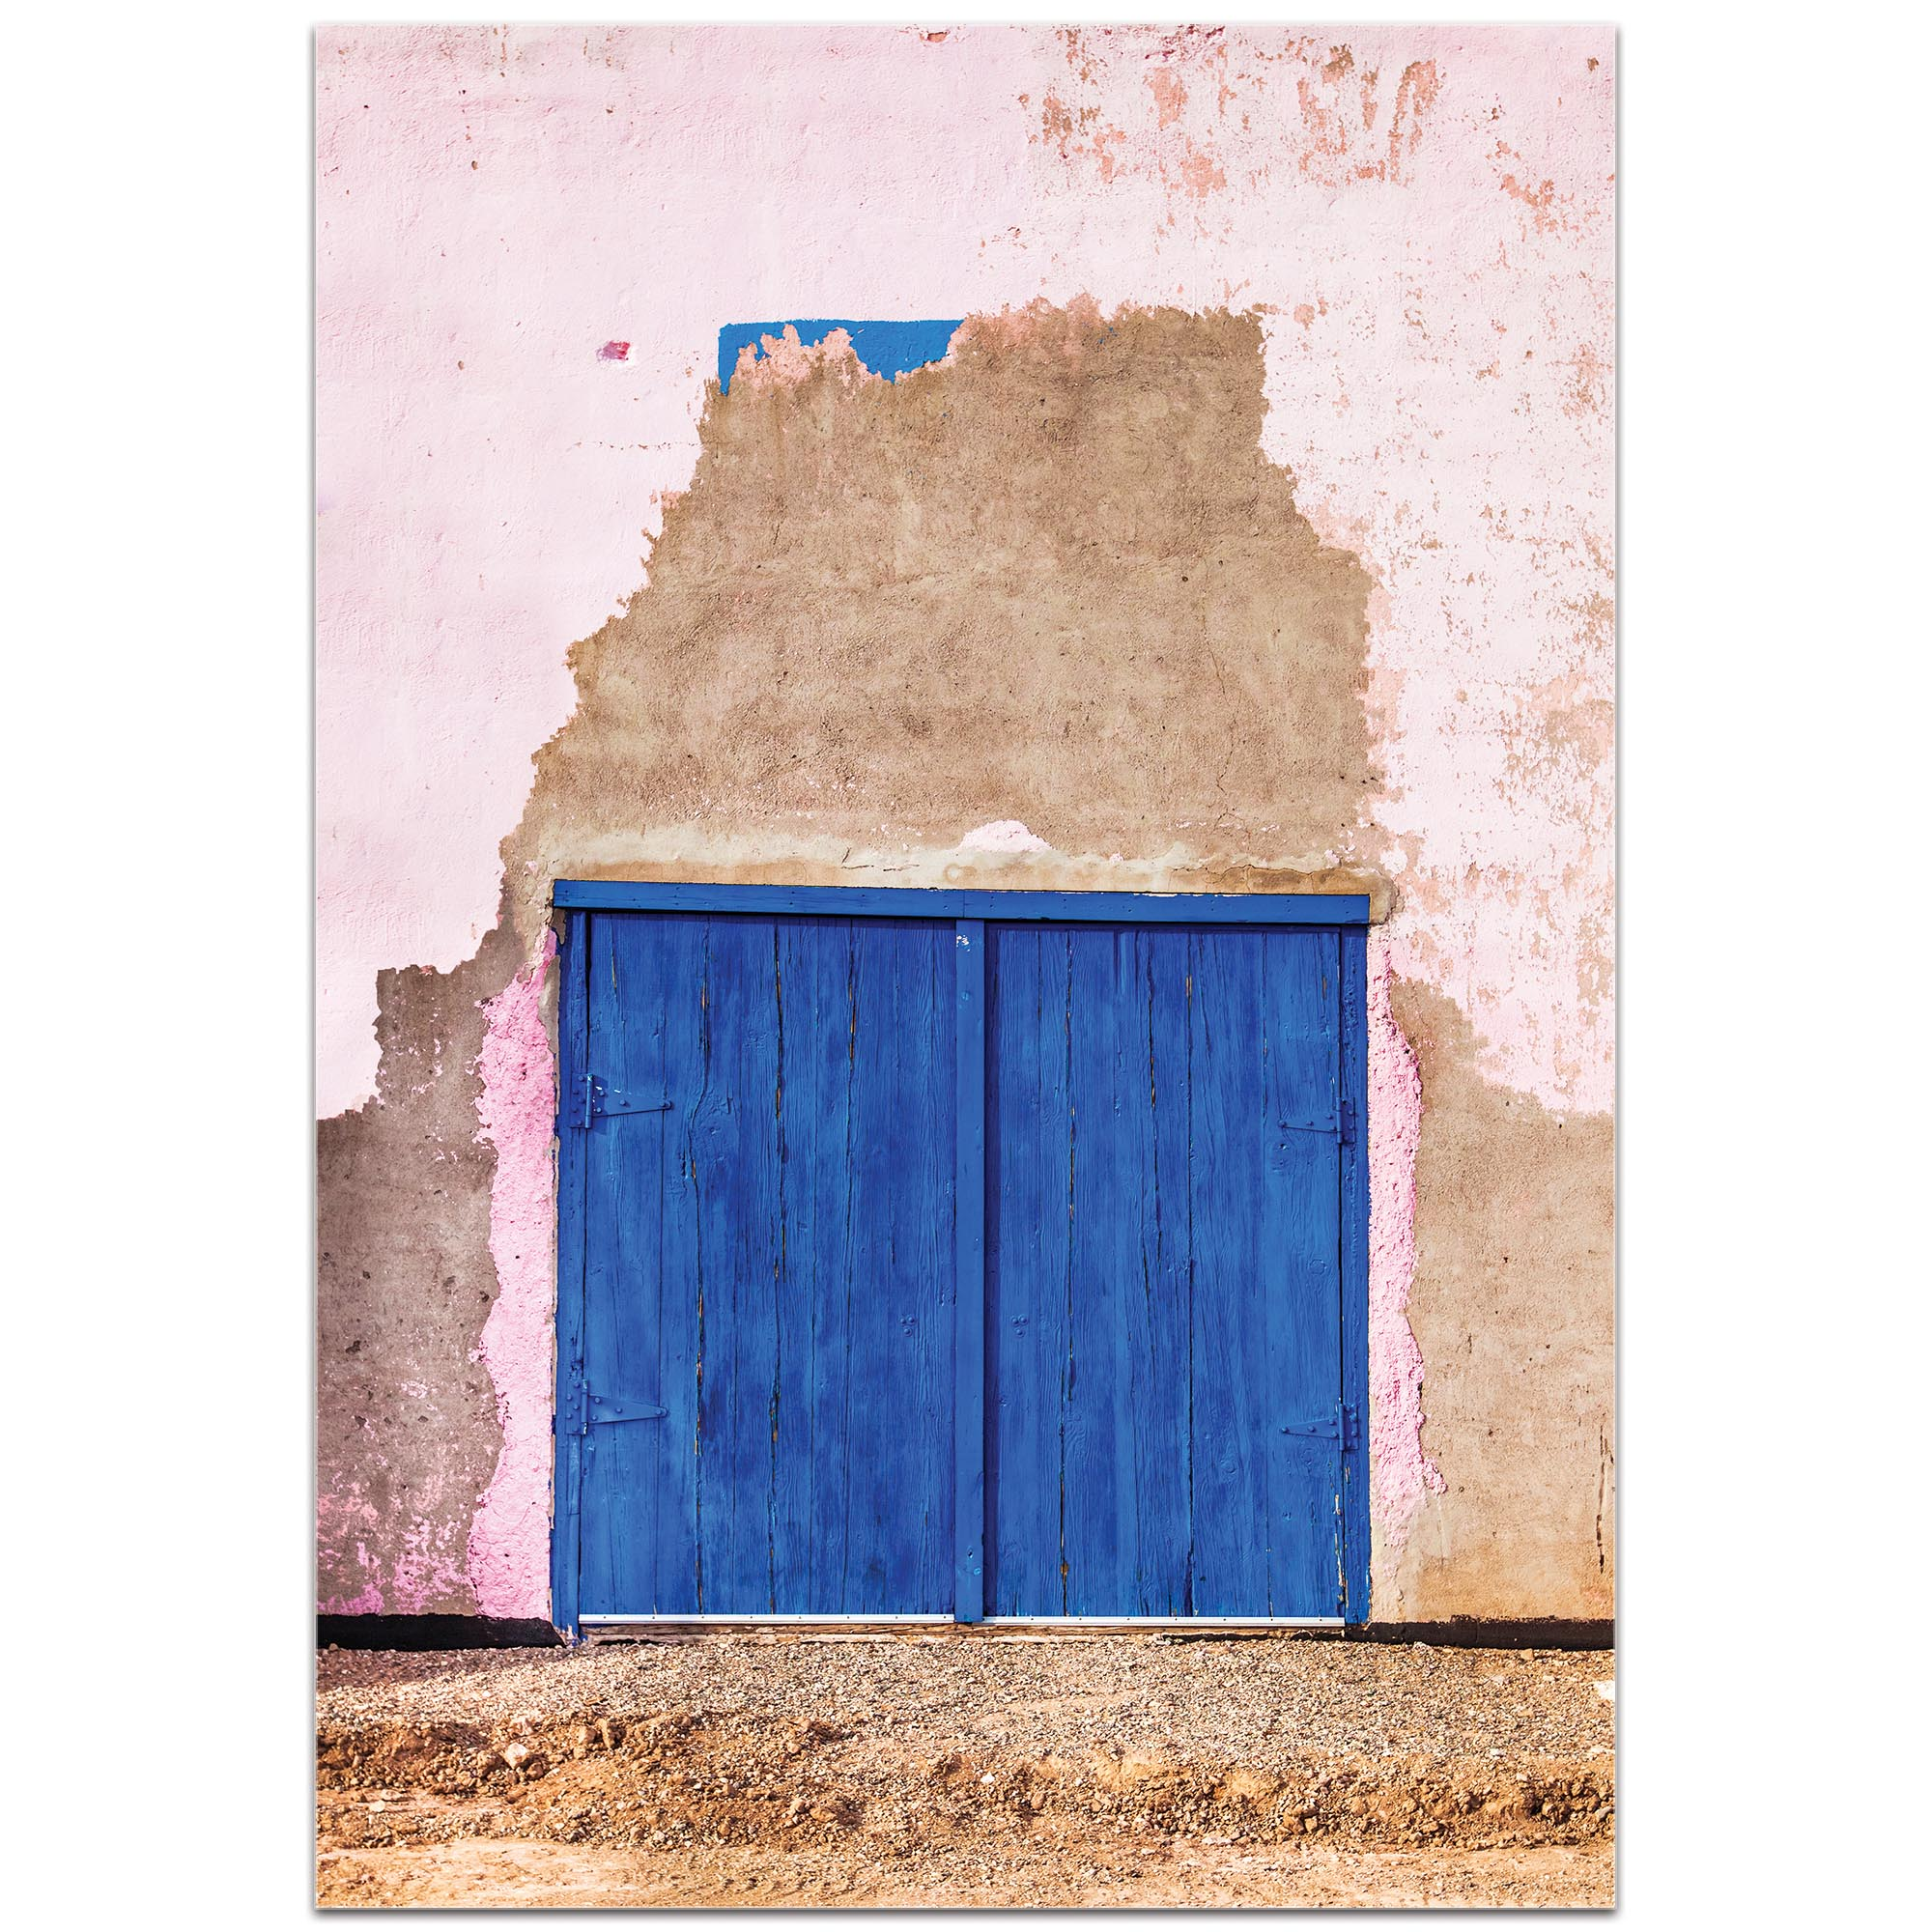 Eclectic Wall Art 'Blue Double Door' - Architecture Decor on Metal or Plexiglass - Image 2